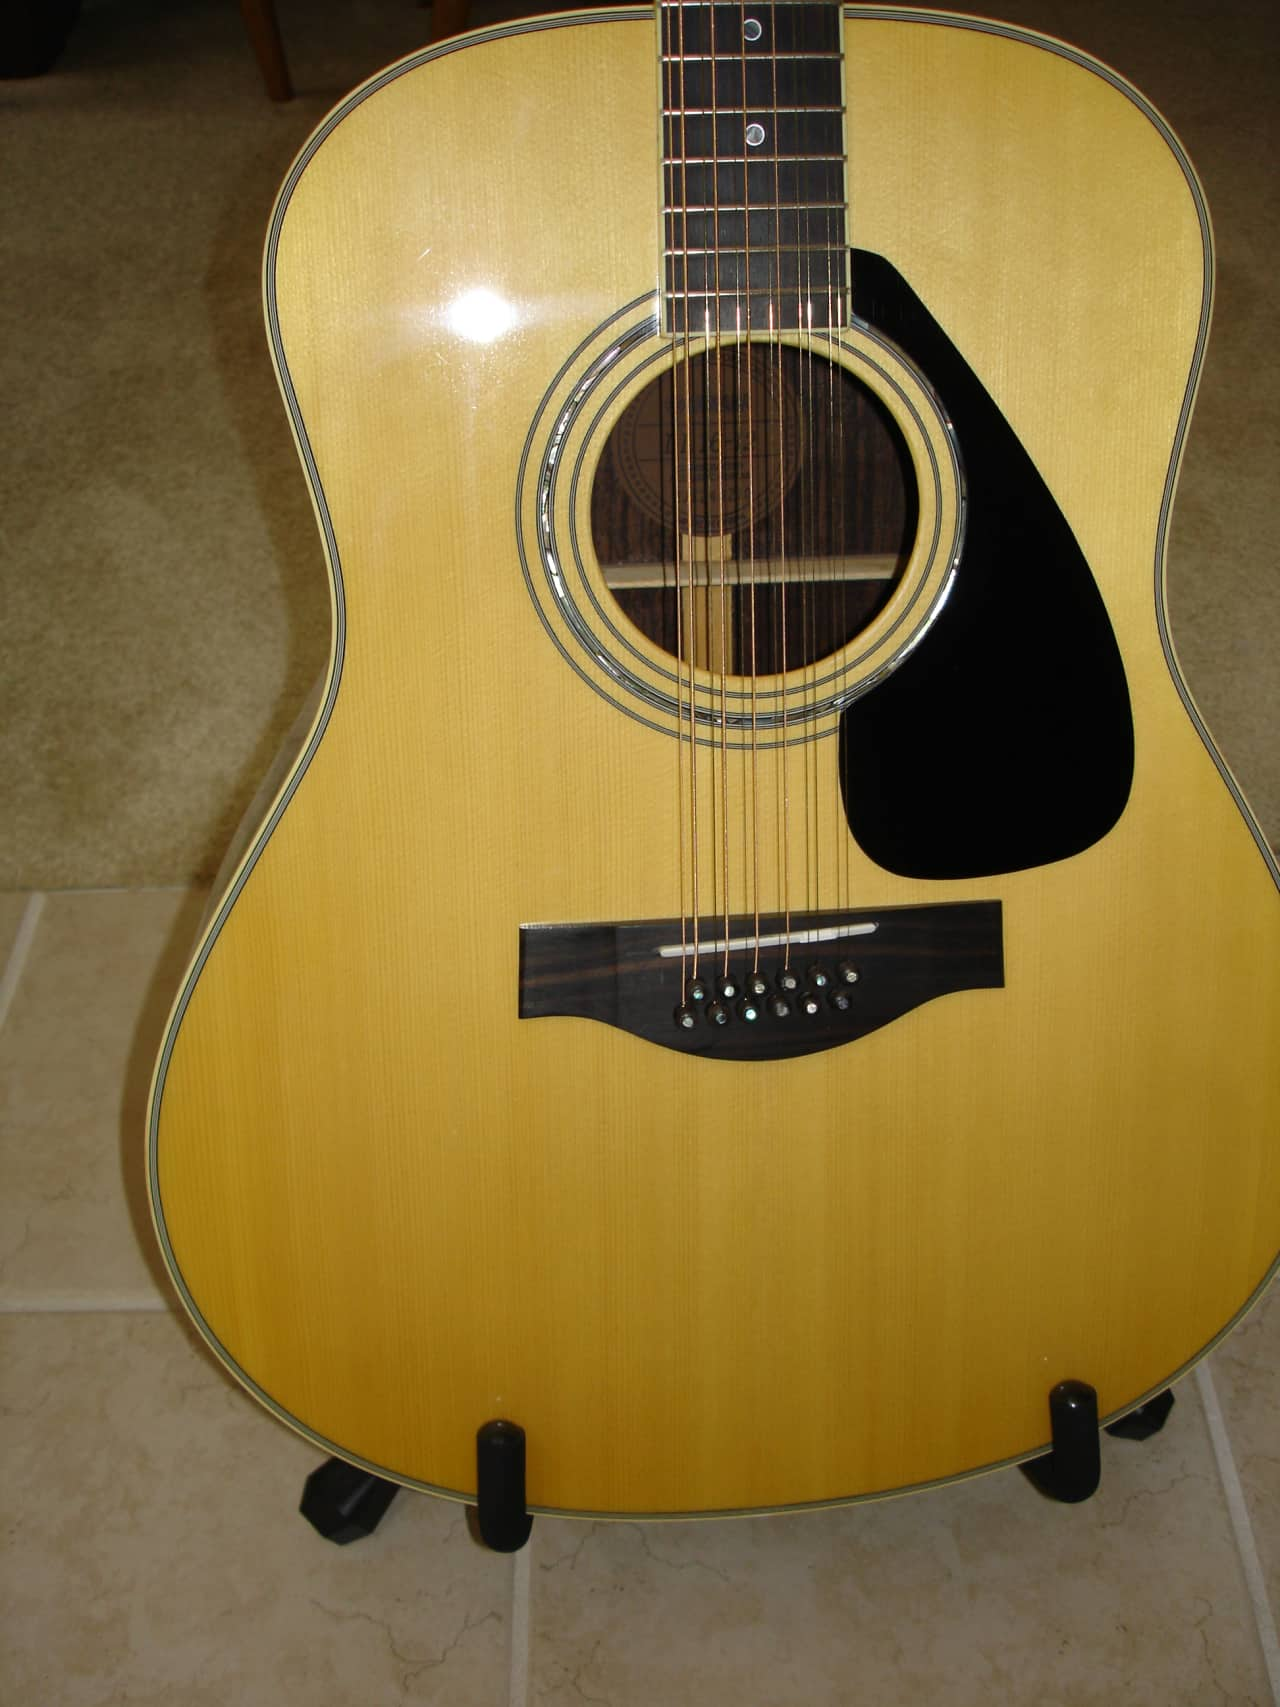 Yamaha ll16 12 all solid wood handcrafted 12 string for Yamaha ls16 vs ll16